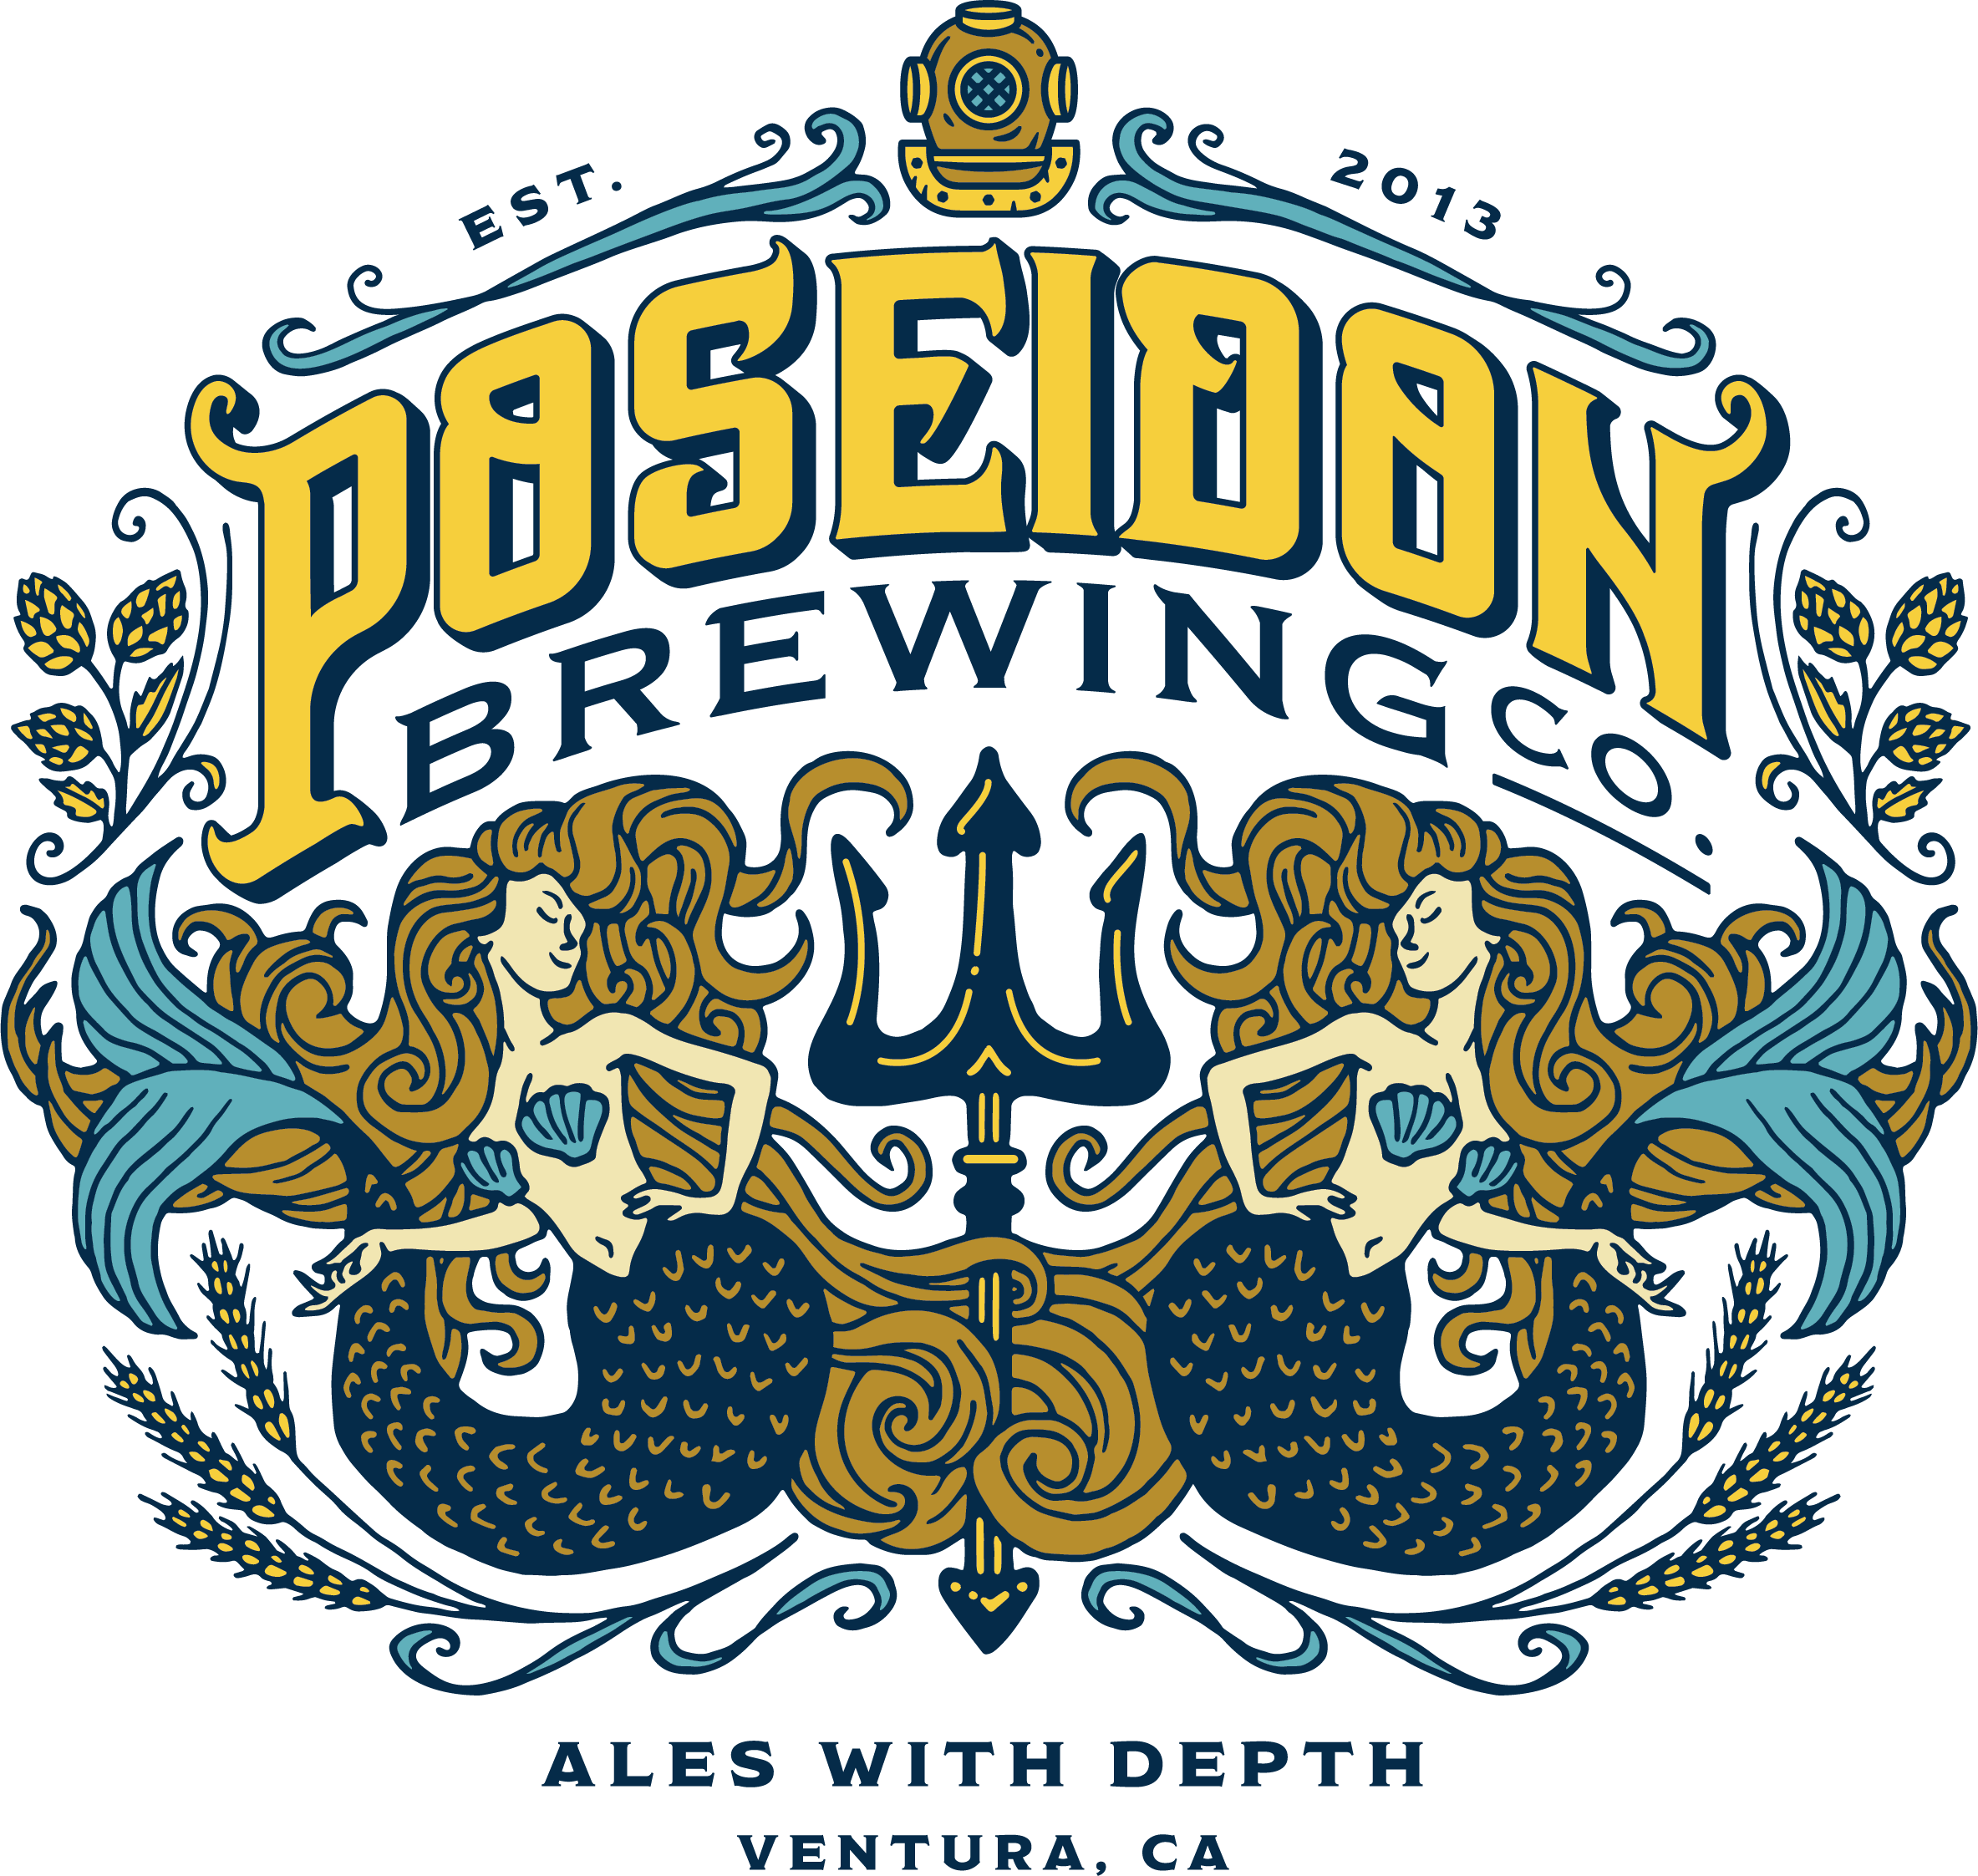 Poseidon Brewing Co.